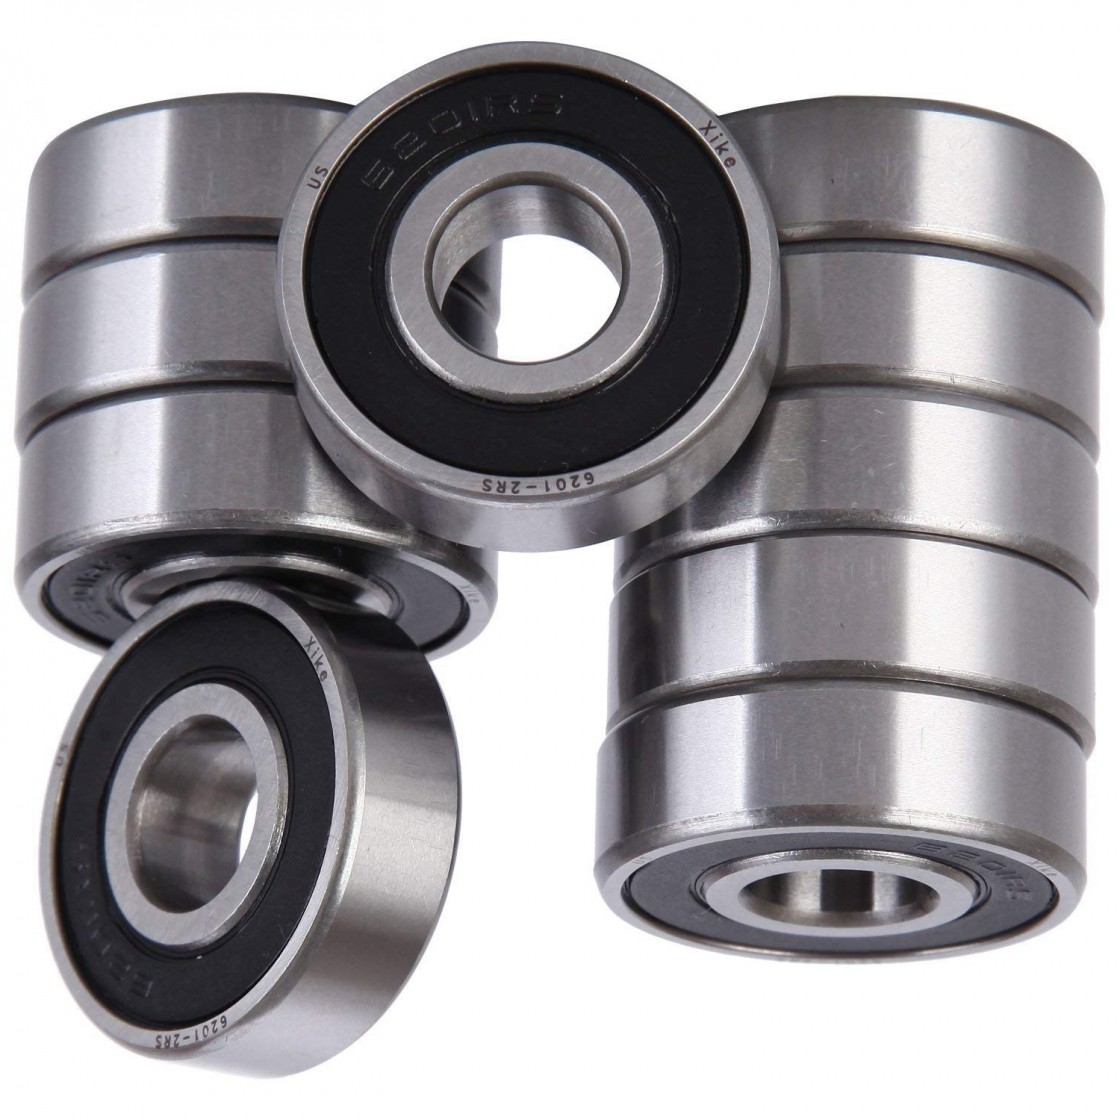 8X21X6mm 688zz Bearing Wheel for Aluminum Window